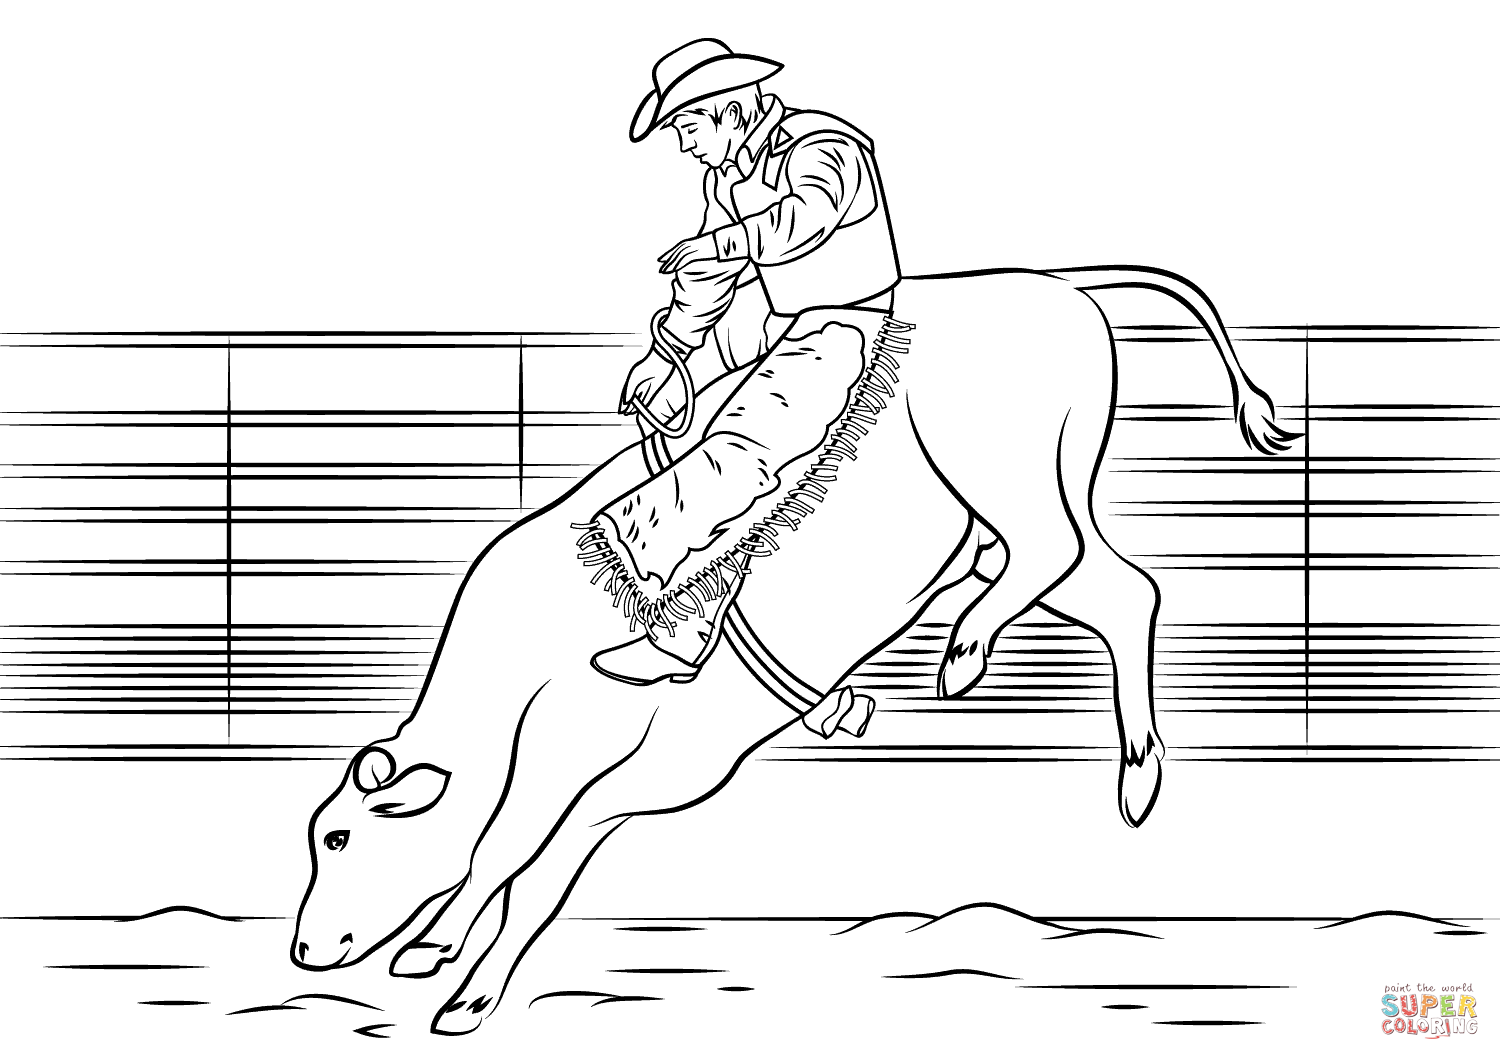 Printable Set Of 10 Western Riding Coloring Pages Digital Download In 2021 Horse Coloring Pages Horse Drawings Ride Drawing [ 993 x 794 Pixel ]